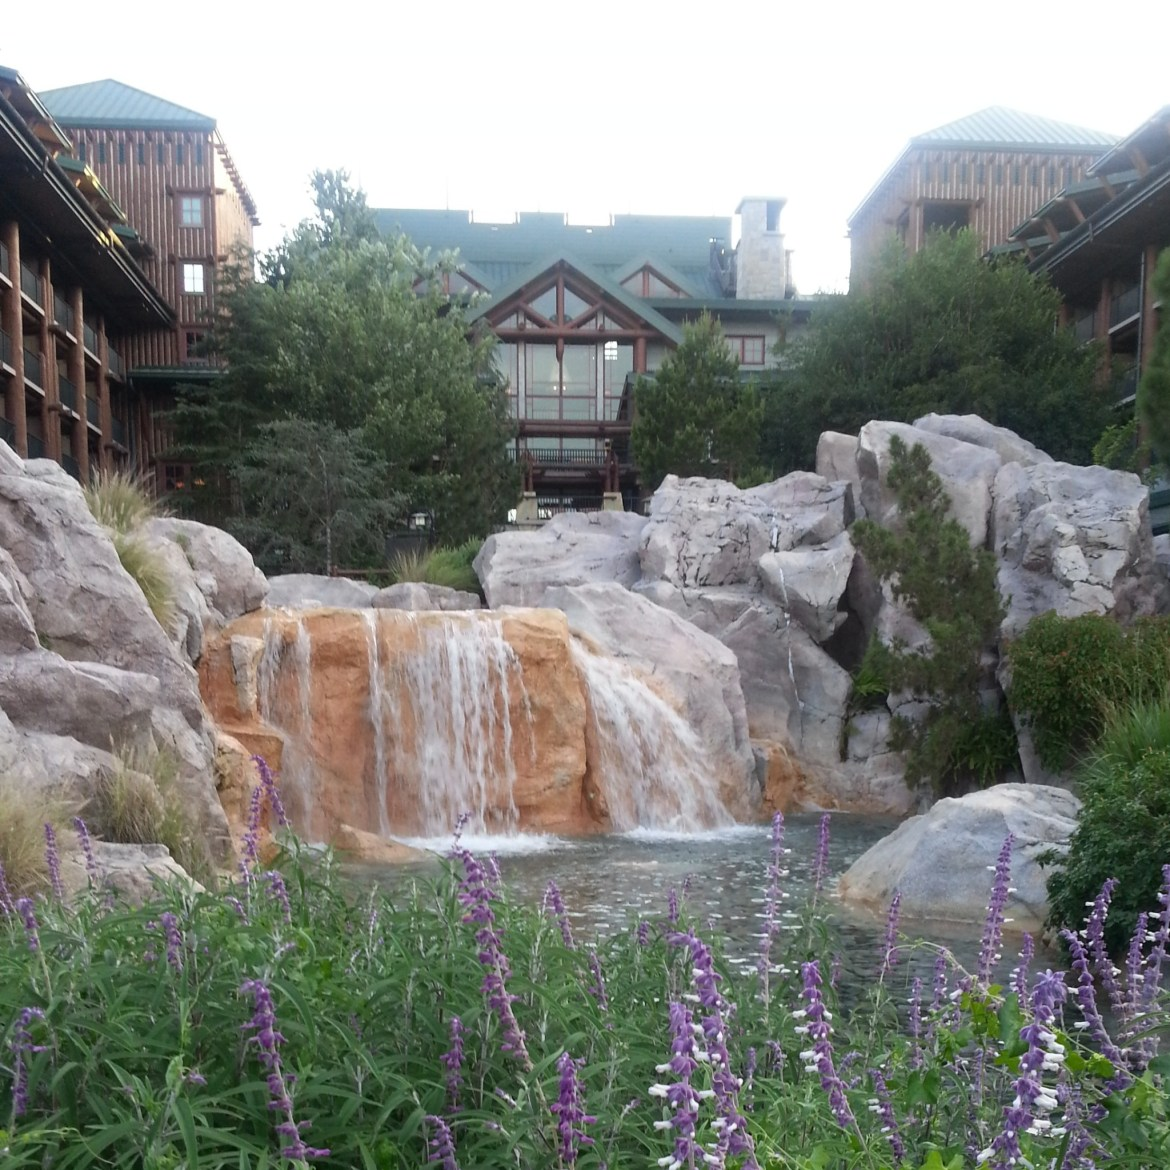 Taking time to visit Disney's Wilderness Lodge